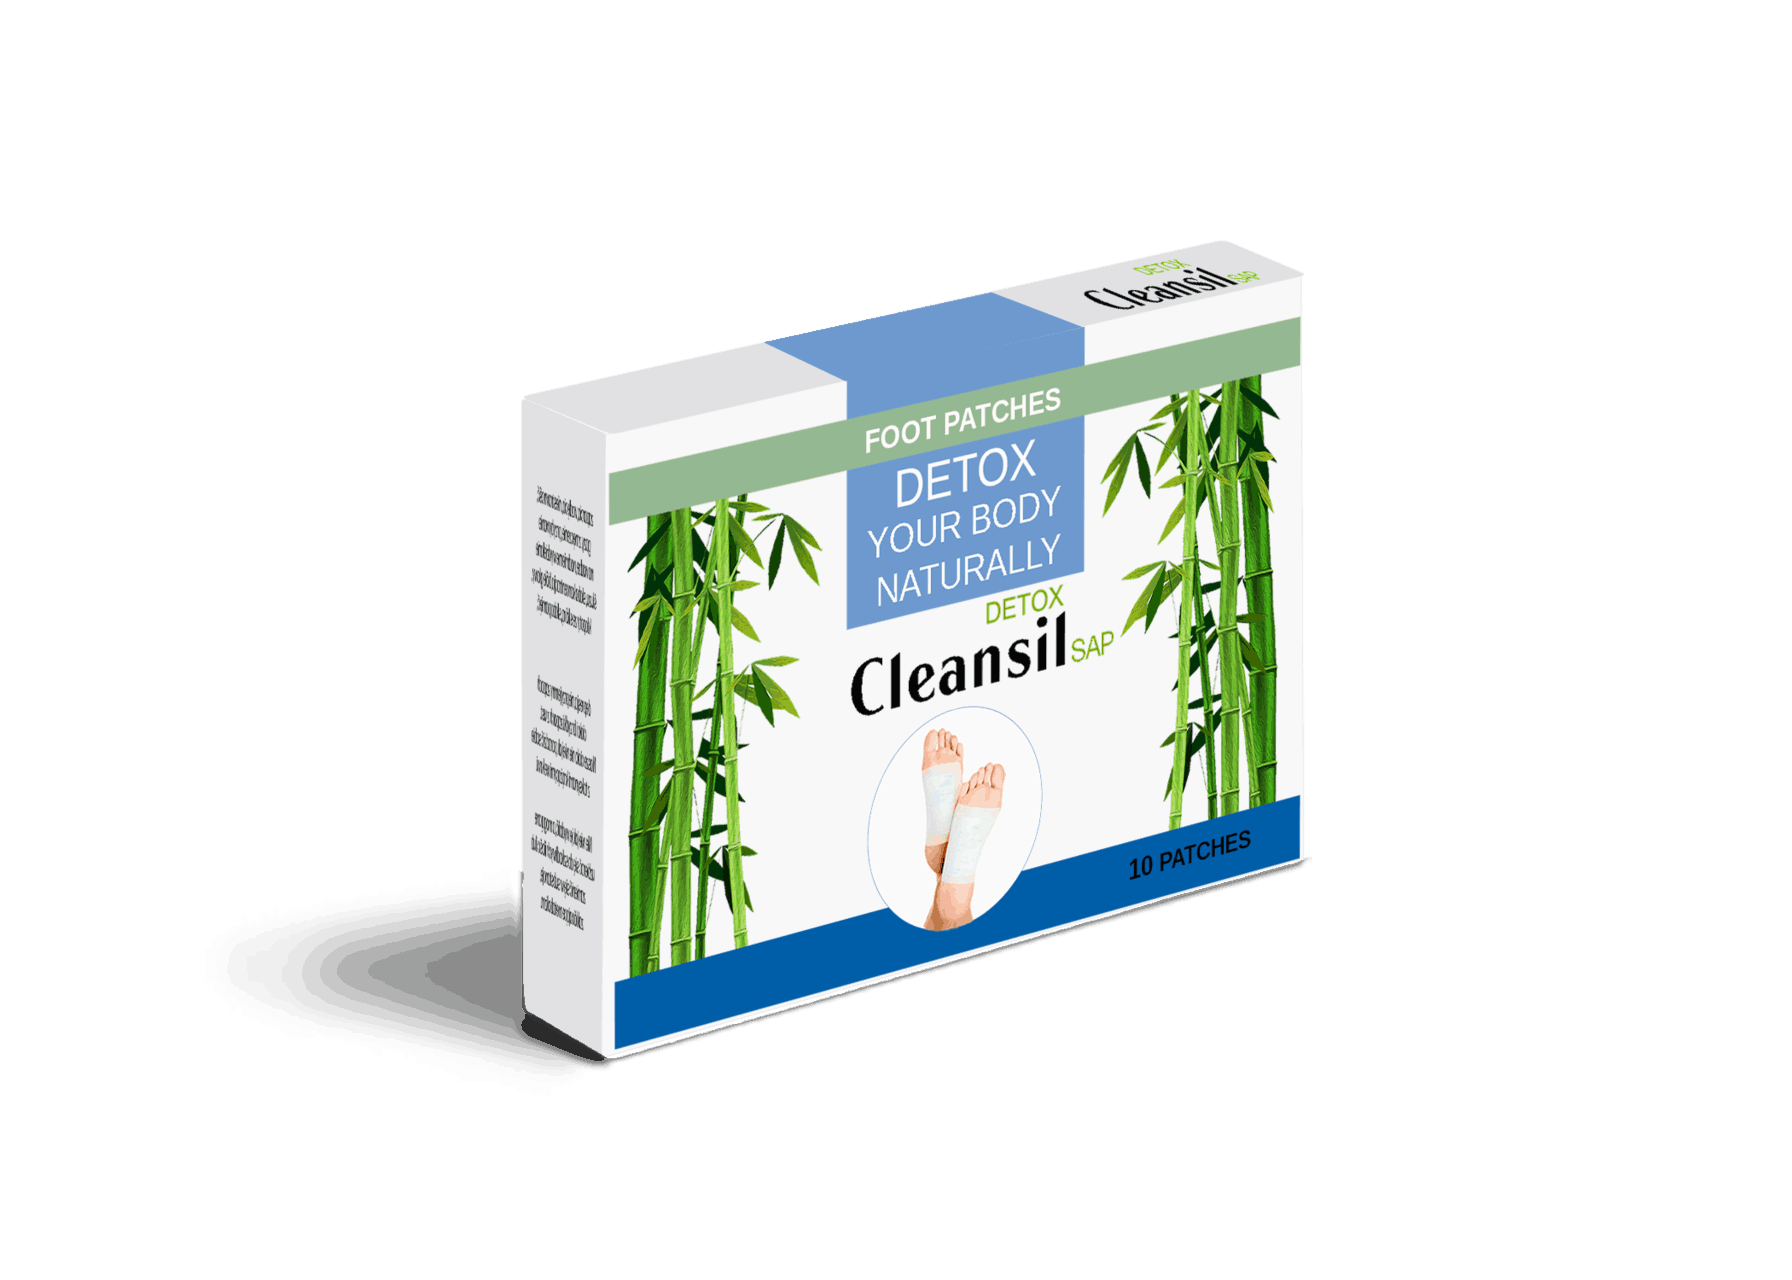 detox cleansil sap